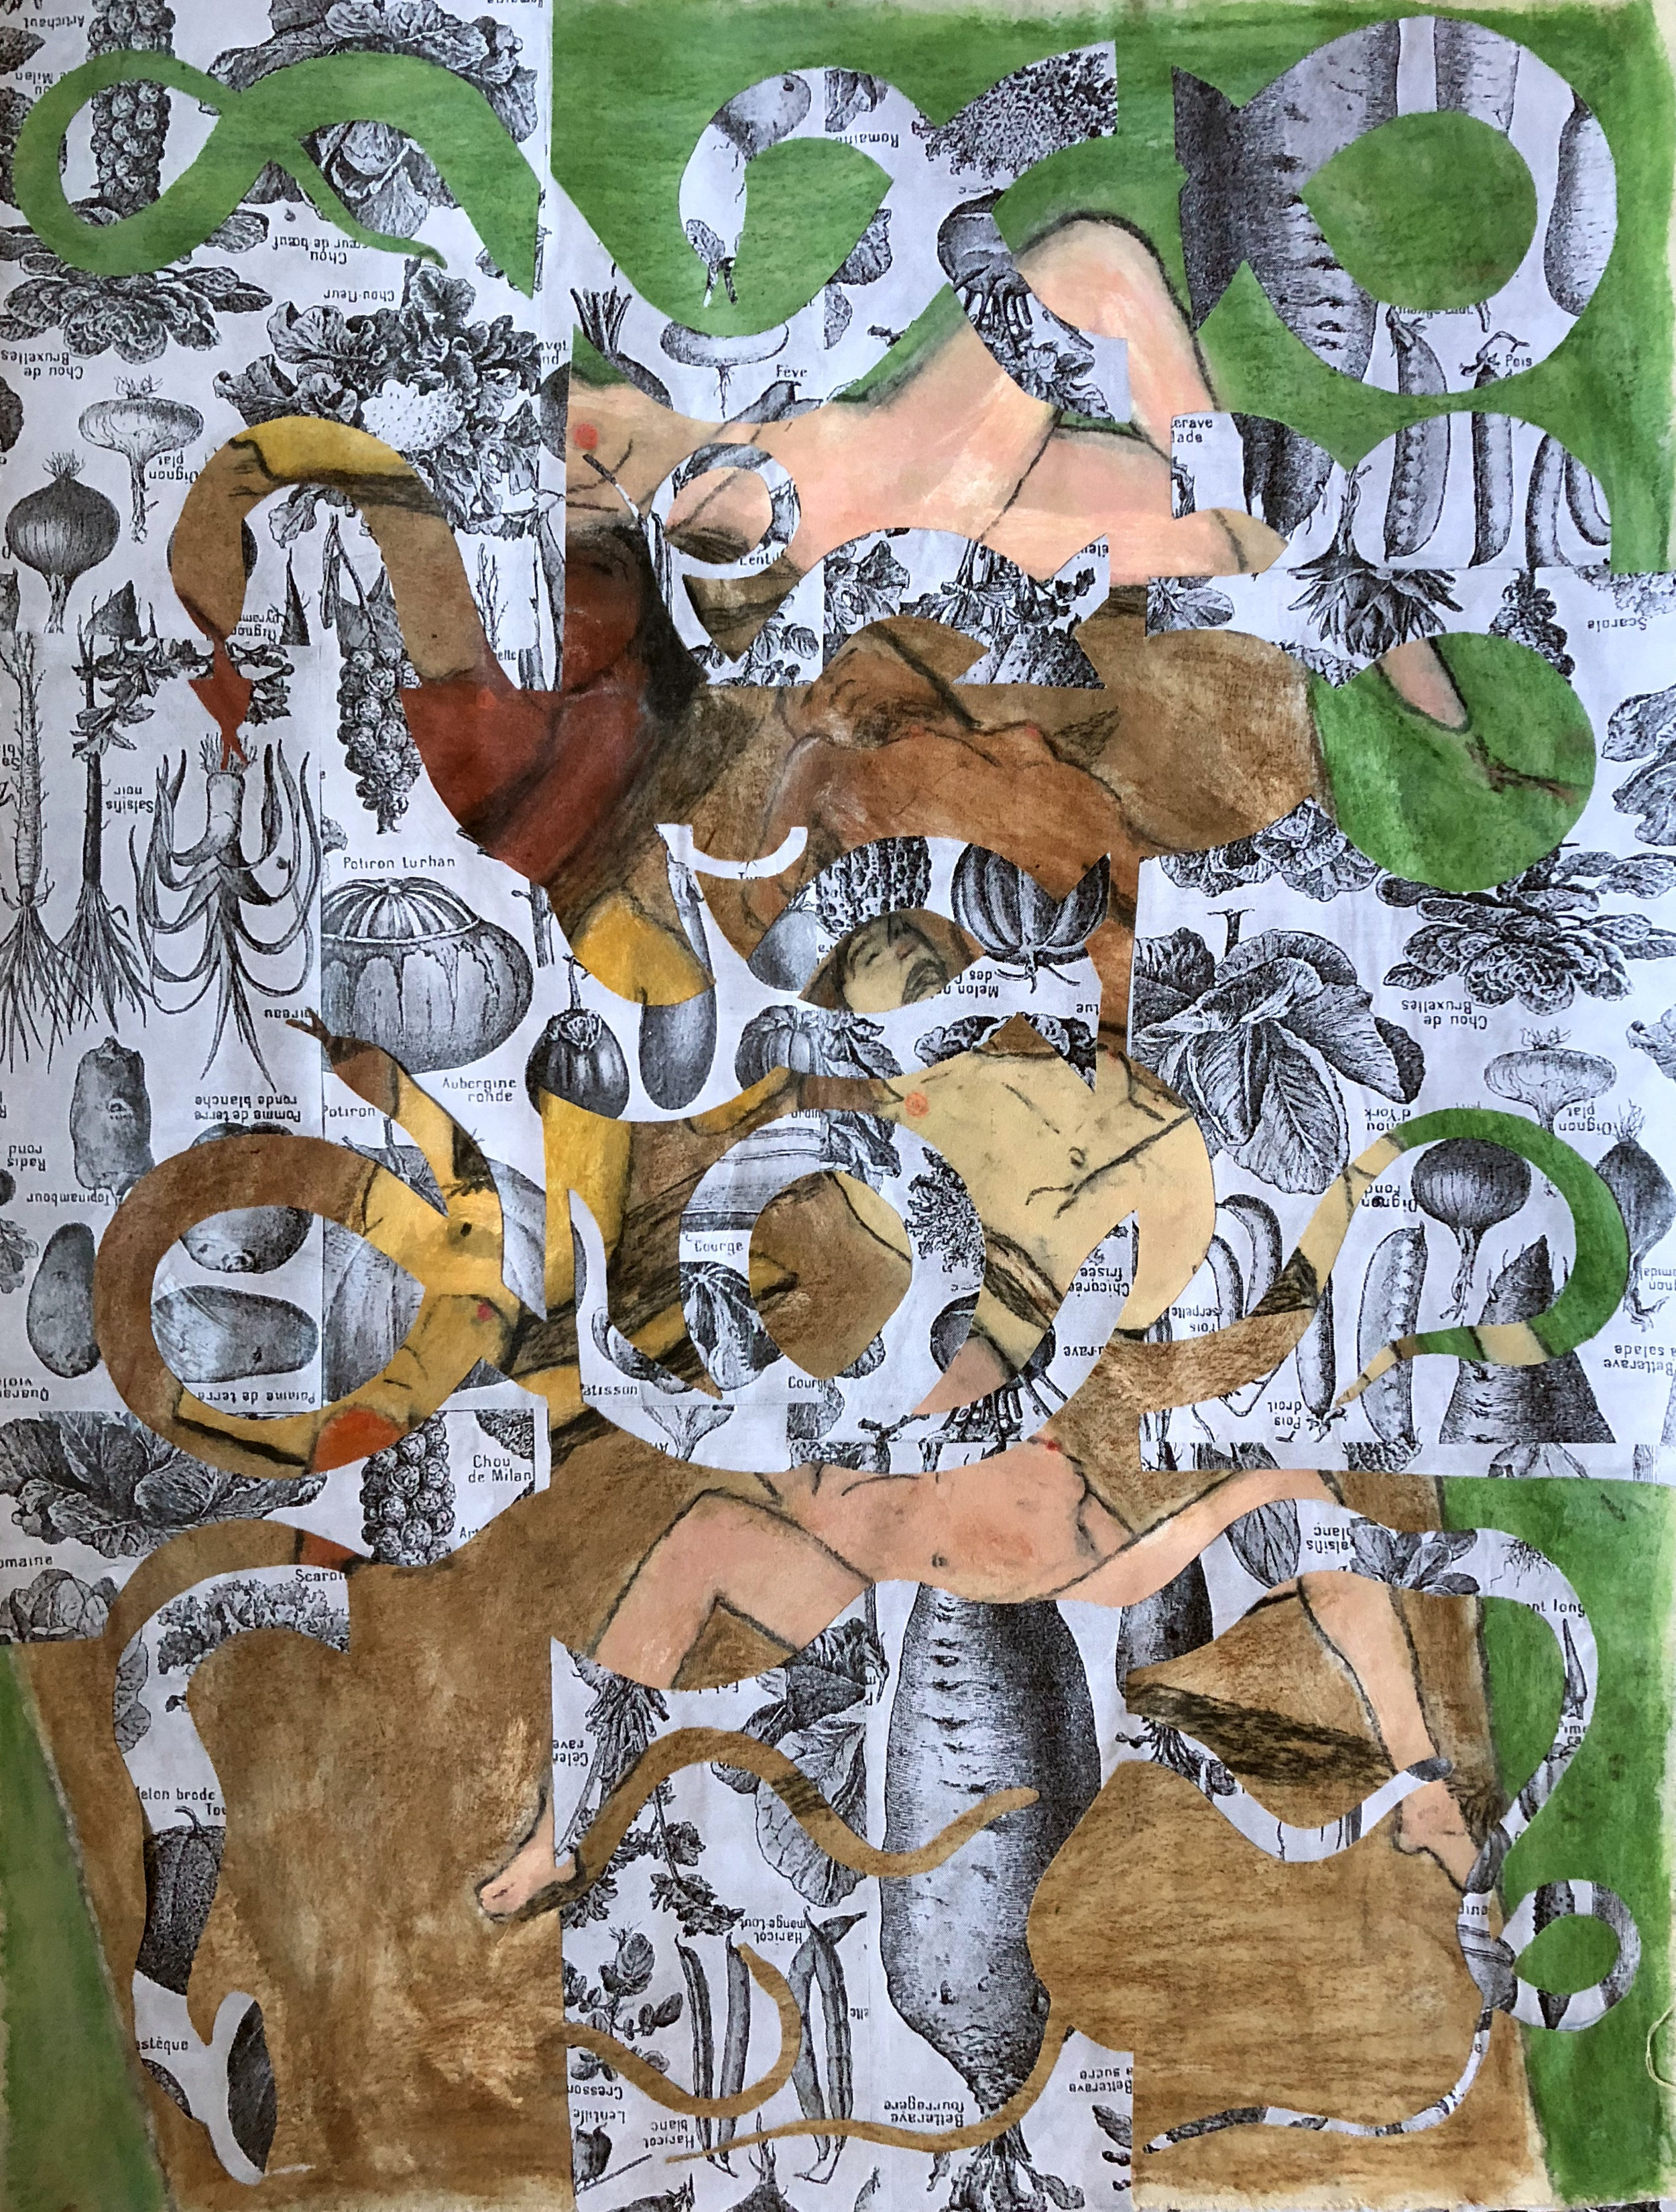 TonyMichaleEstrada - Male Gaze in the Garden of Eden 2 - 43 x 31.5 - collage on canvas_ pastels and photo prints - 2018 - $700.jpg